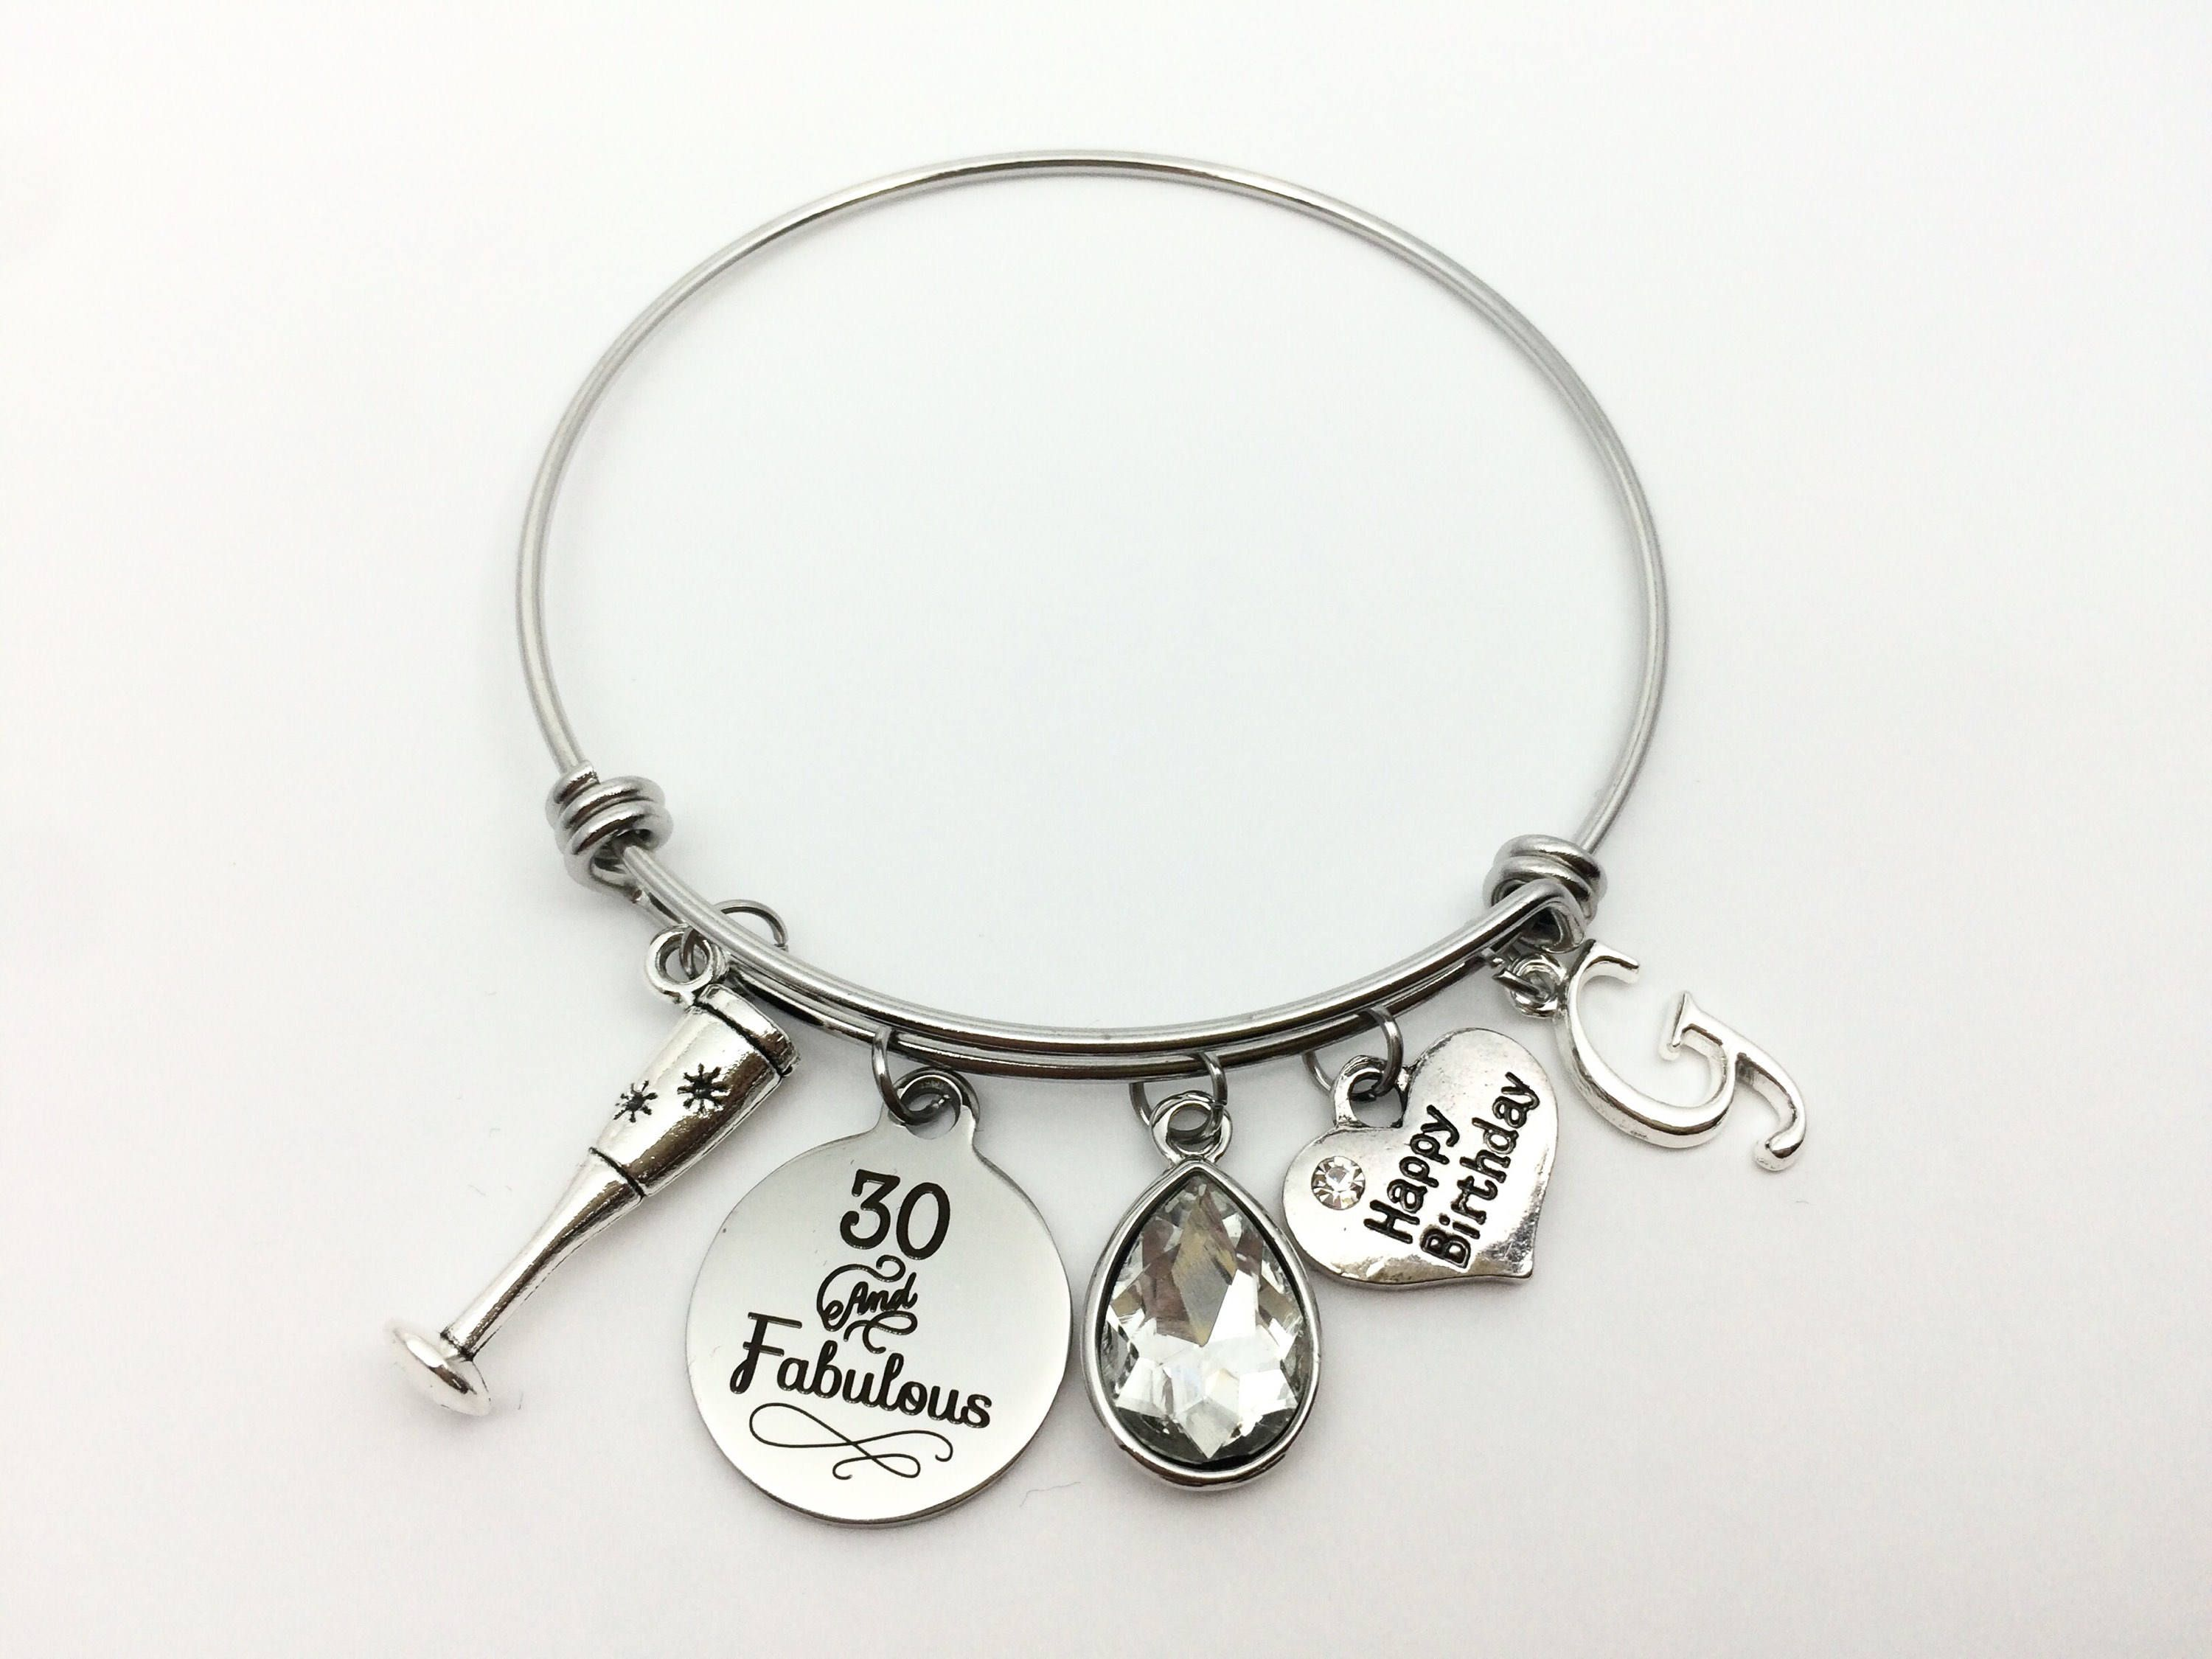 30th Birthday Charm Bracelet Alex And Ani Bracelets